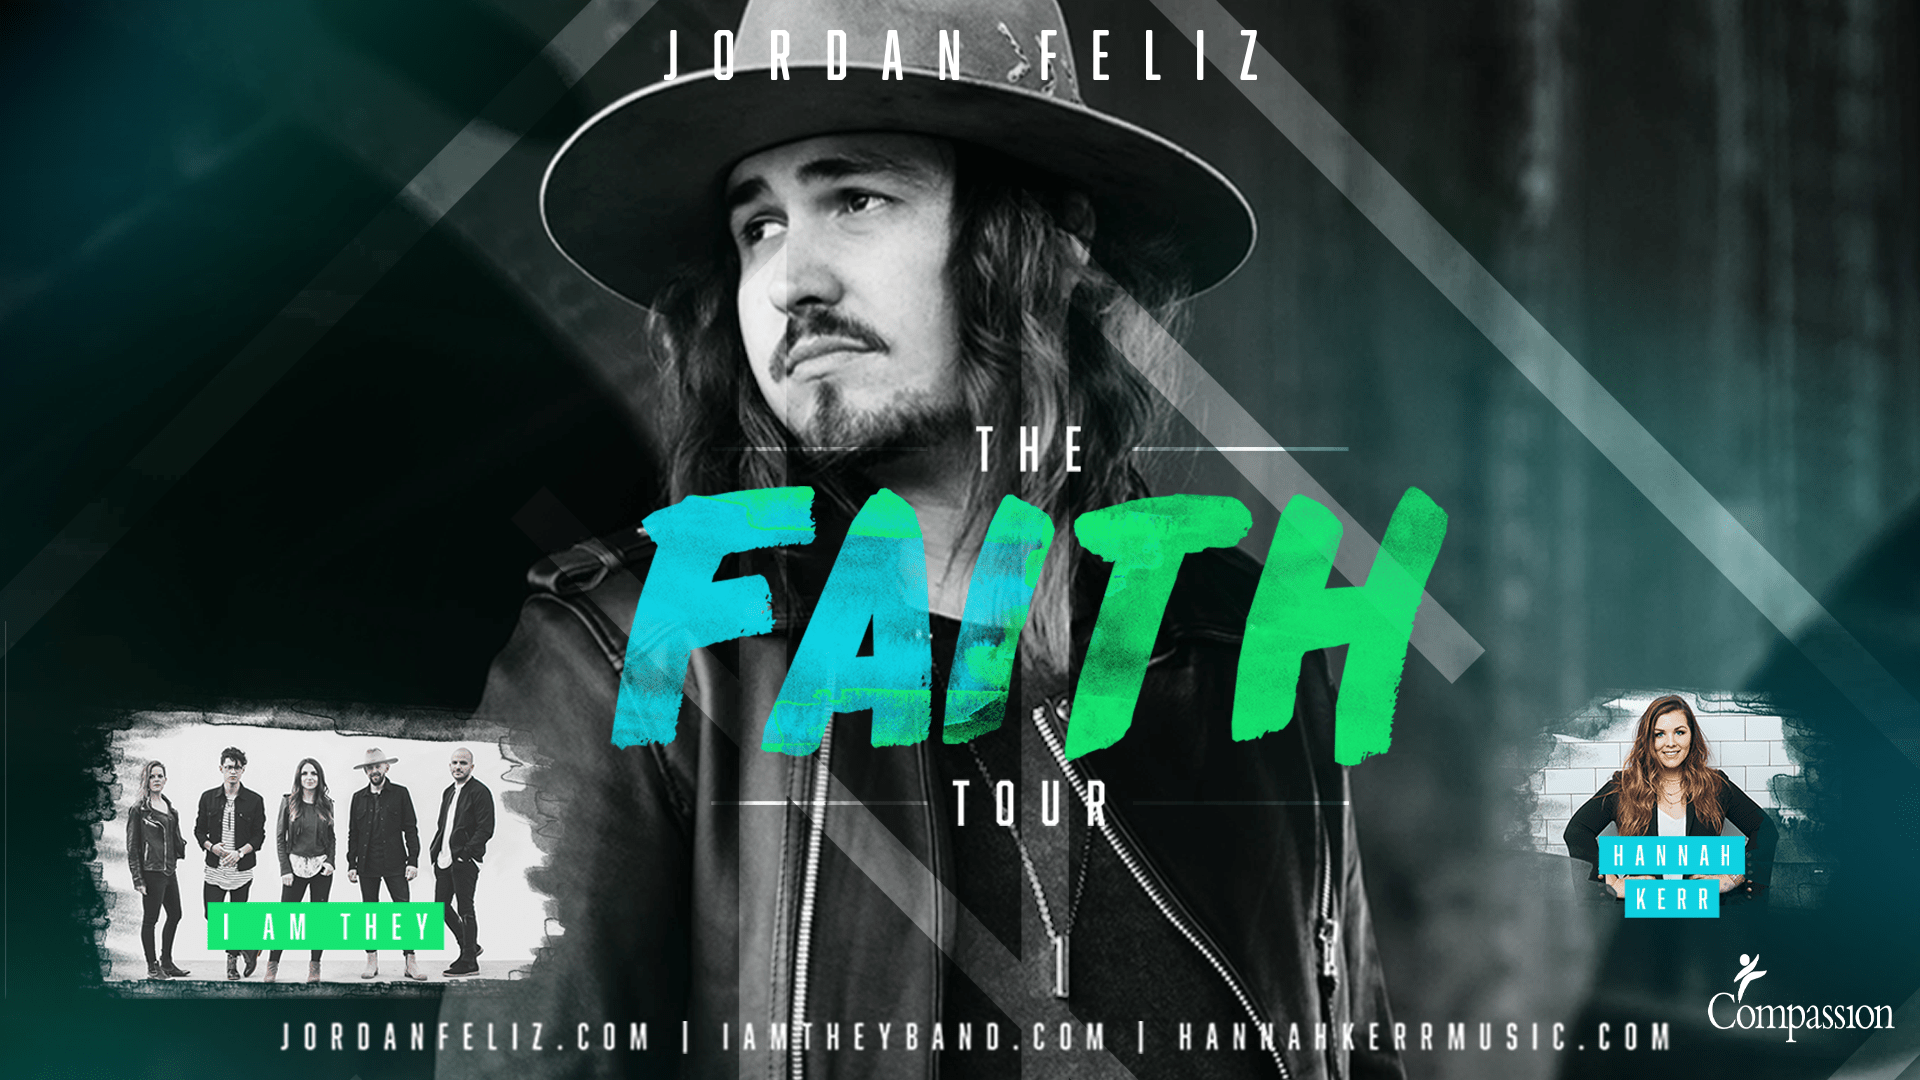 Oct. 11th - 7 p.m. - You are welcome to join us for The Faith Tour of Jordan Feliz at Concord Baptist Church, Anderson SC